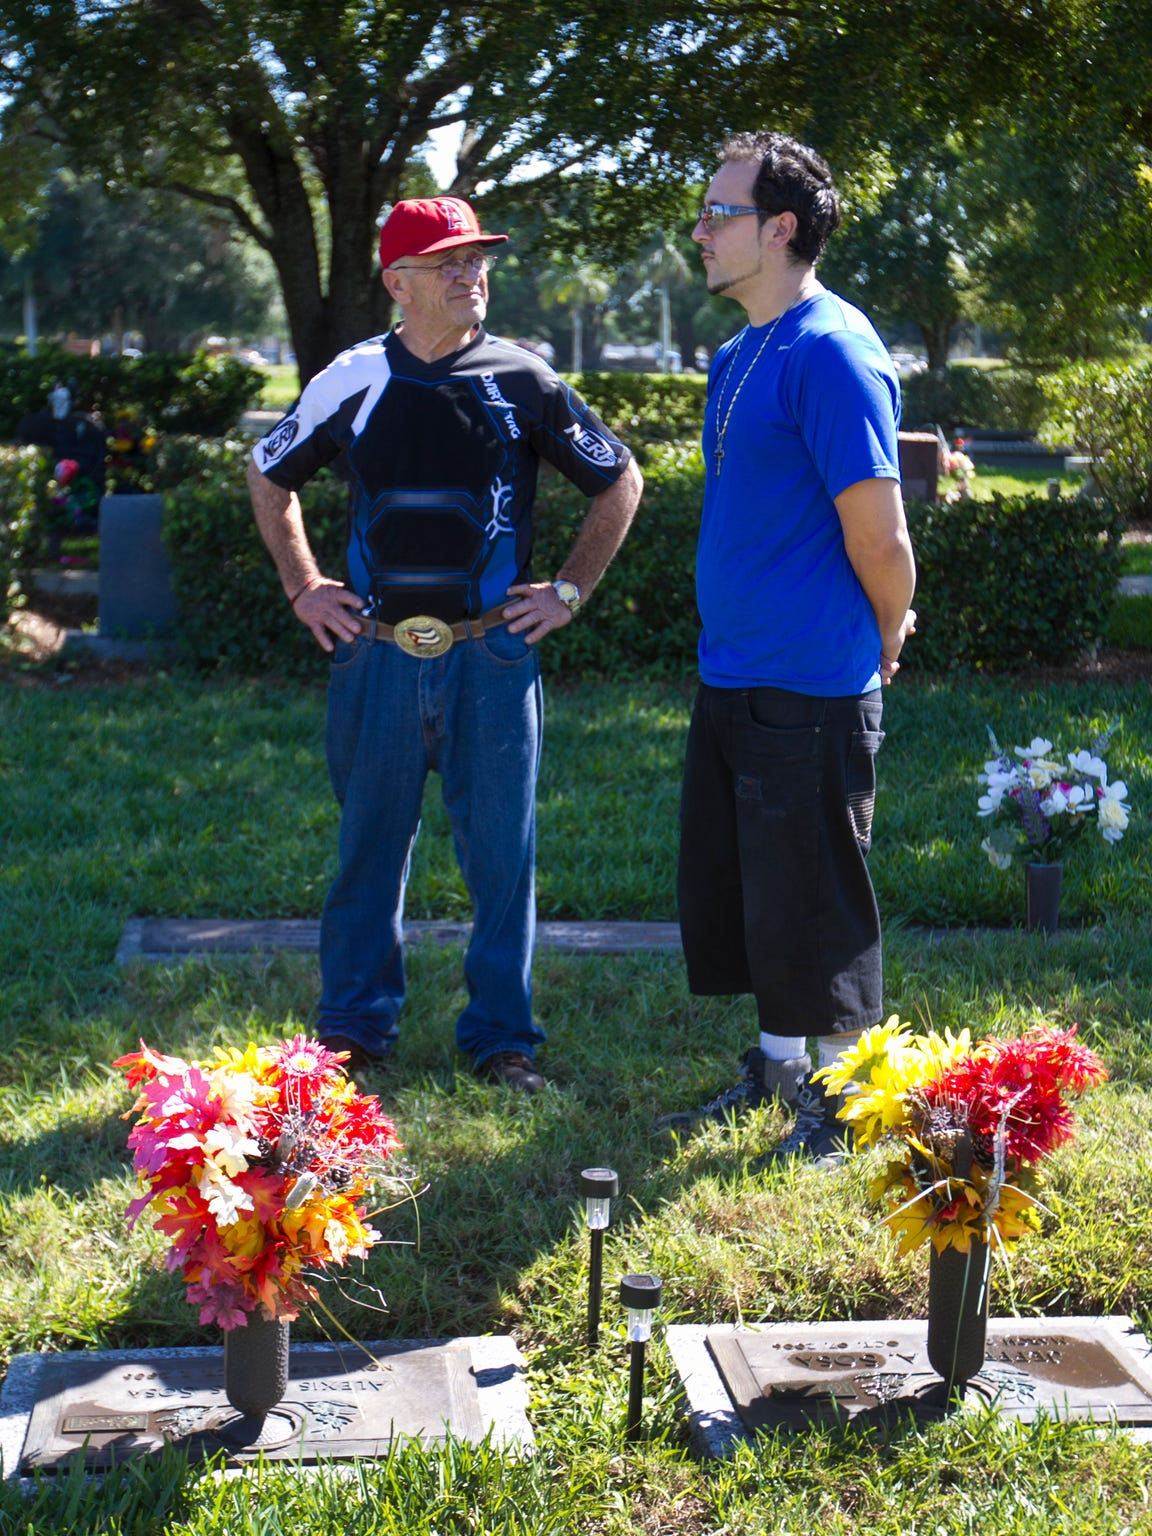 Alfredo and his son Michael Sosa were shocked to learn